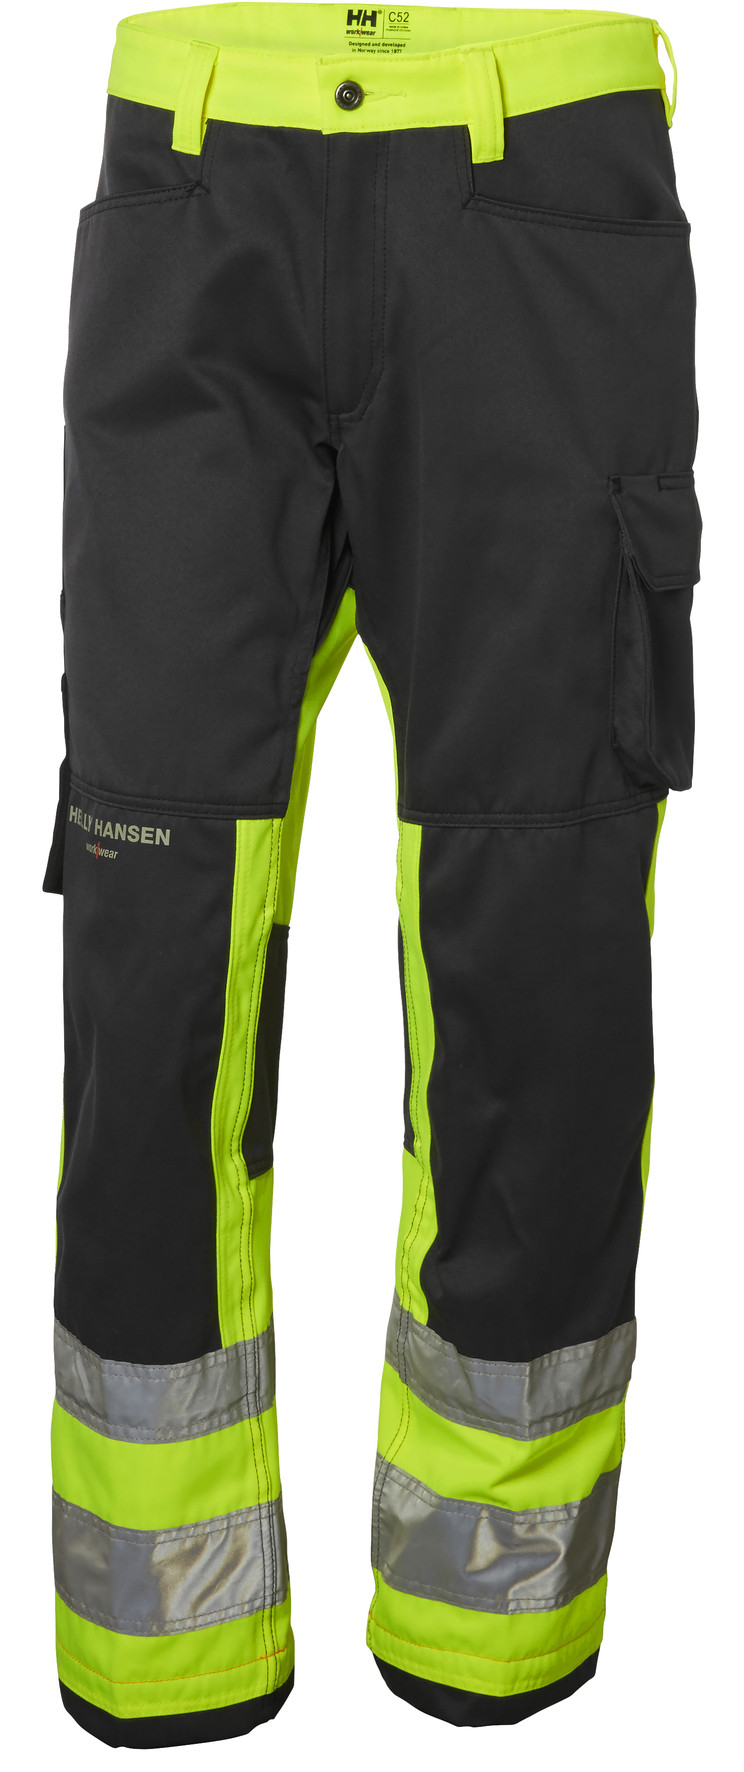 Штаны Helly Hansen Alna Pant Cl 1 - 77410 (HV Yellow / Charcoal; W36/L32)